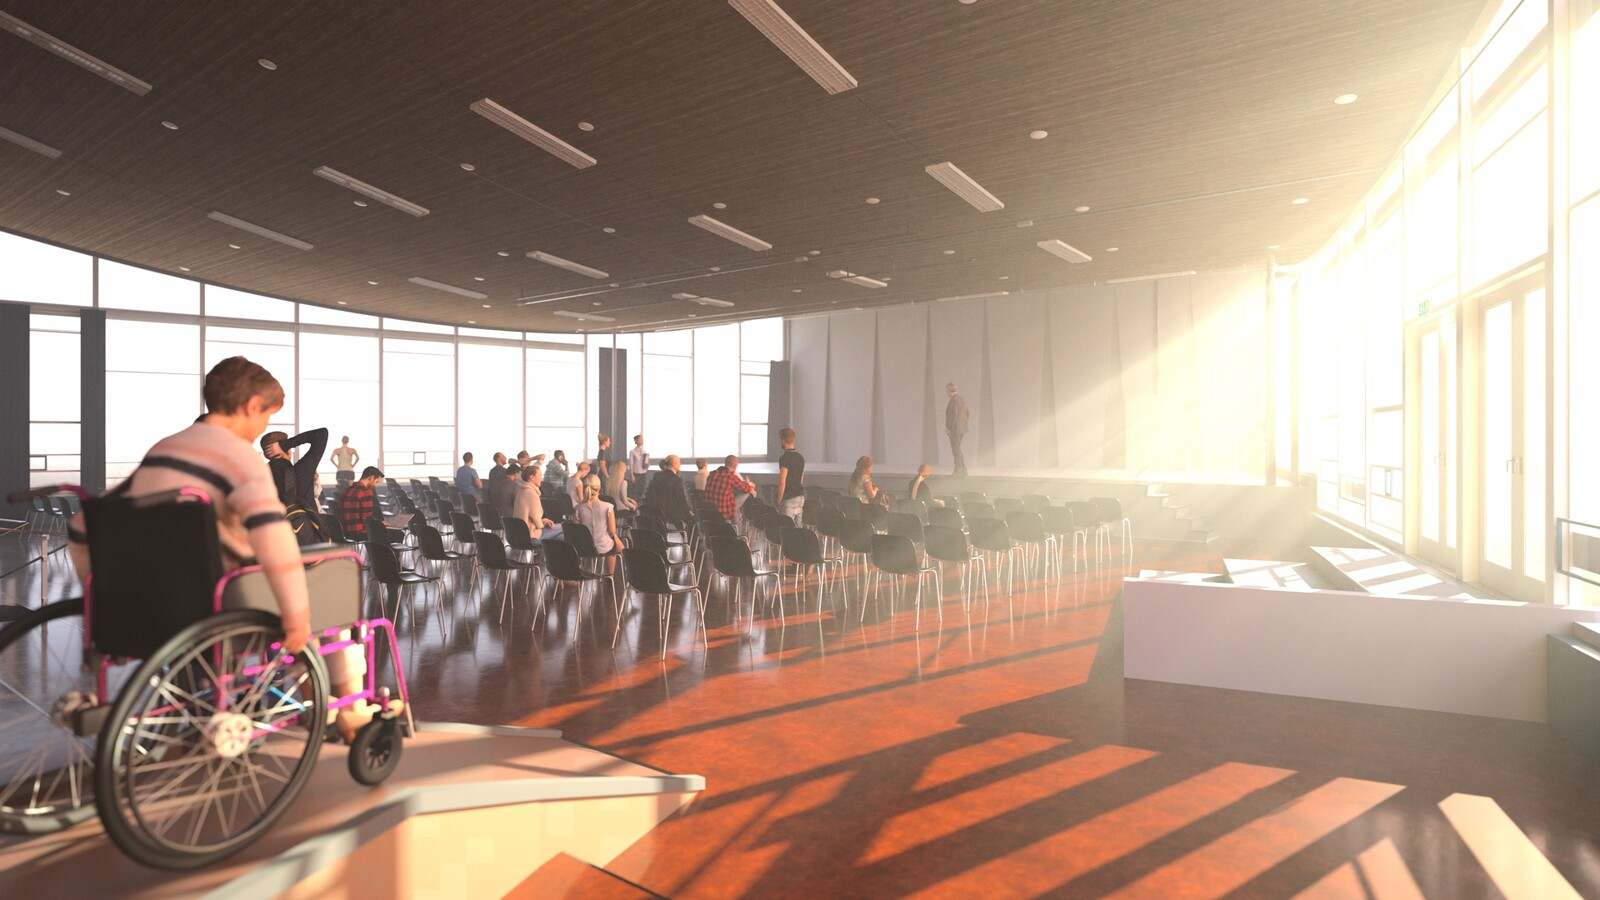 SketchUp 2021 + Thea Render V3 Broedplaats LELY (The Lely Incubator) Auditorium Amsterdam Showroom Final-Scene 6D 23m38s HD1080 1536sp